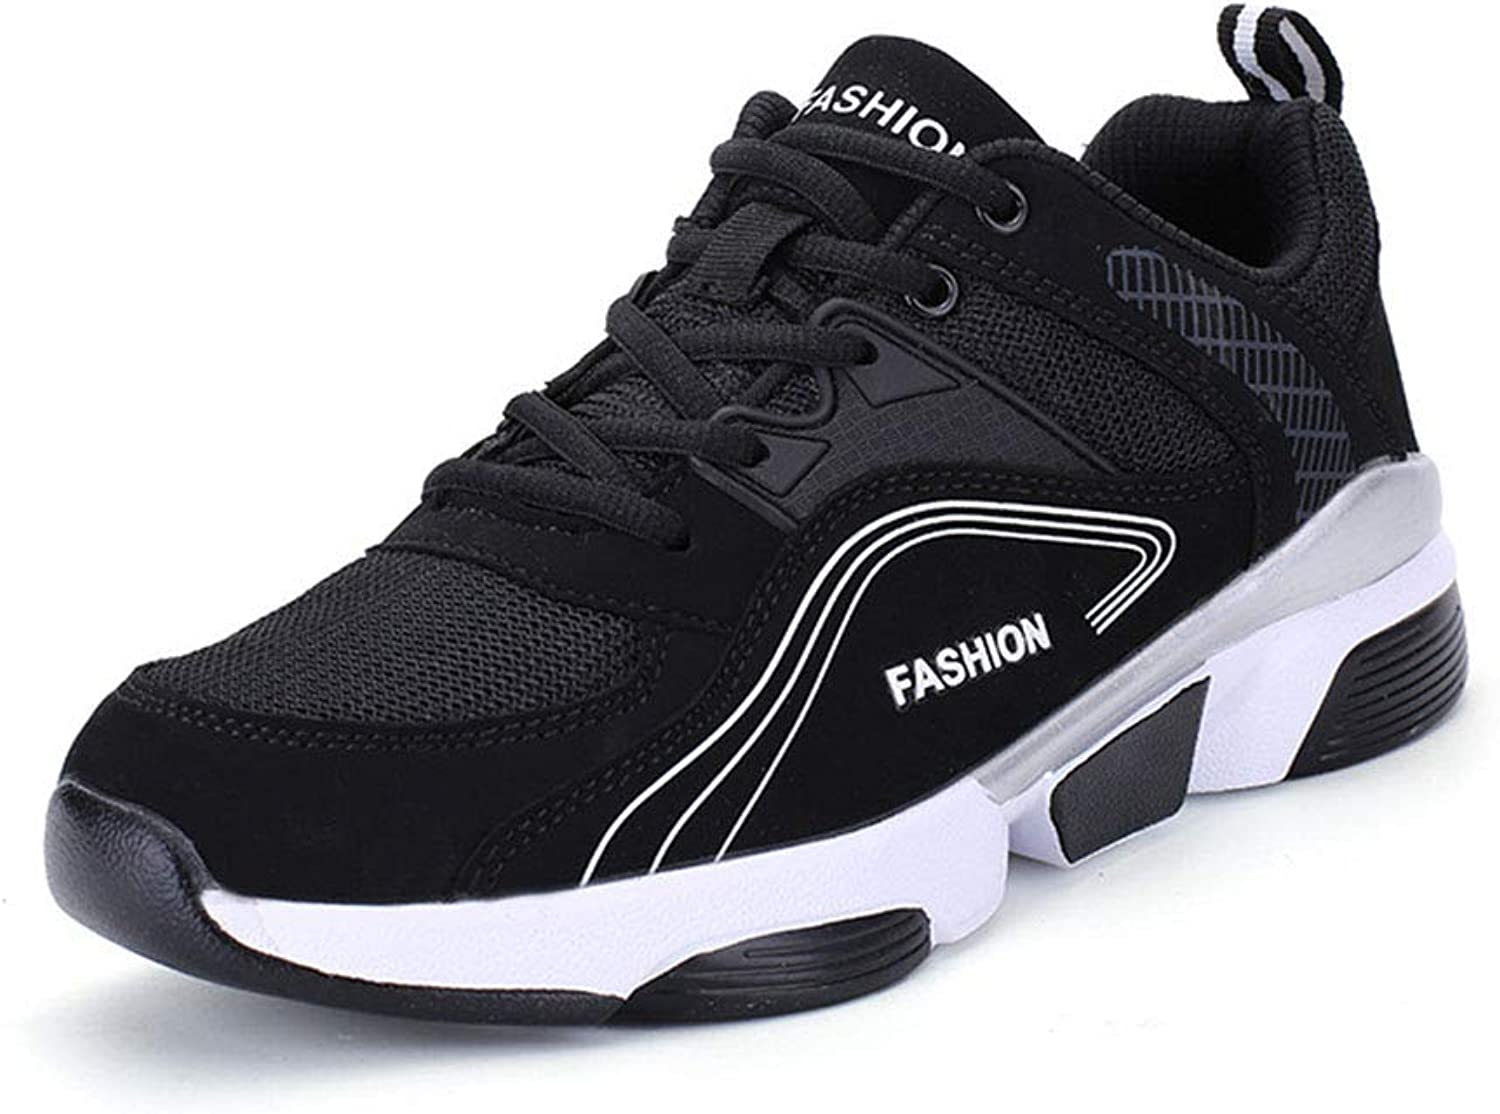 Men's shoes, Low-top Running Breathable Single shoes Spring Fall New Casual Sneakers Comfortable Lace-up Sports shoes